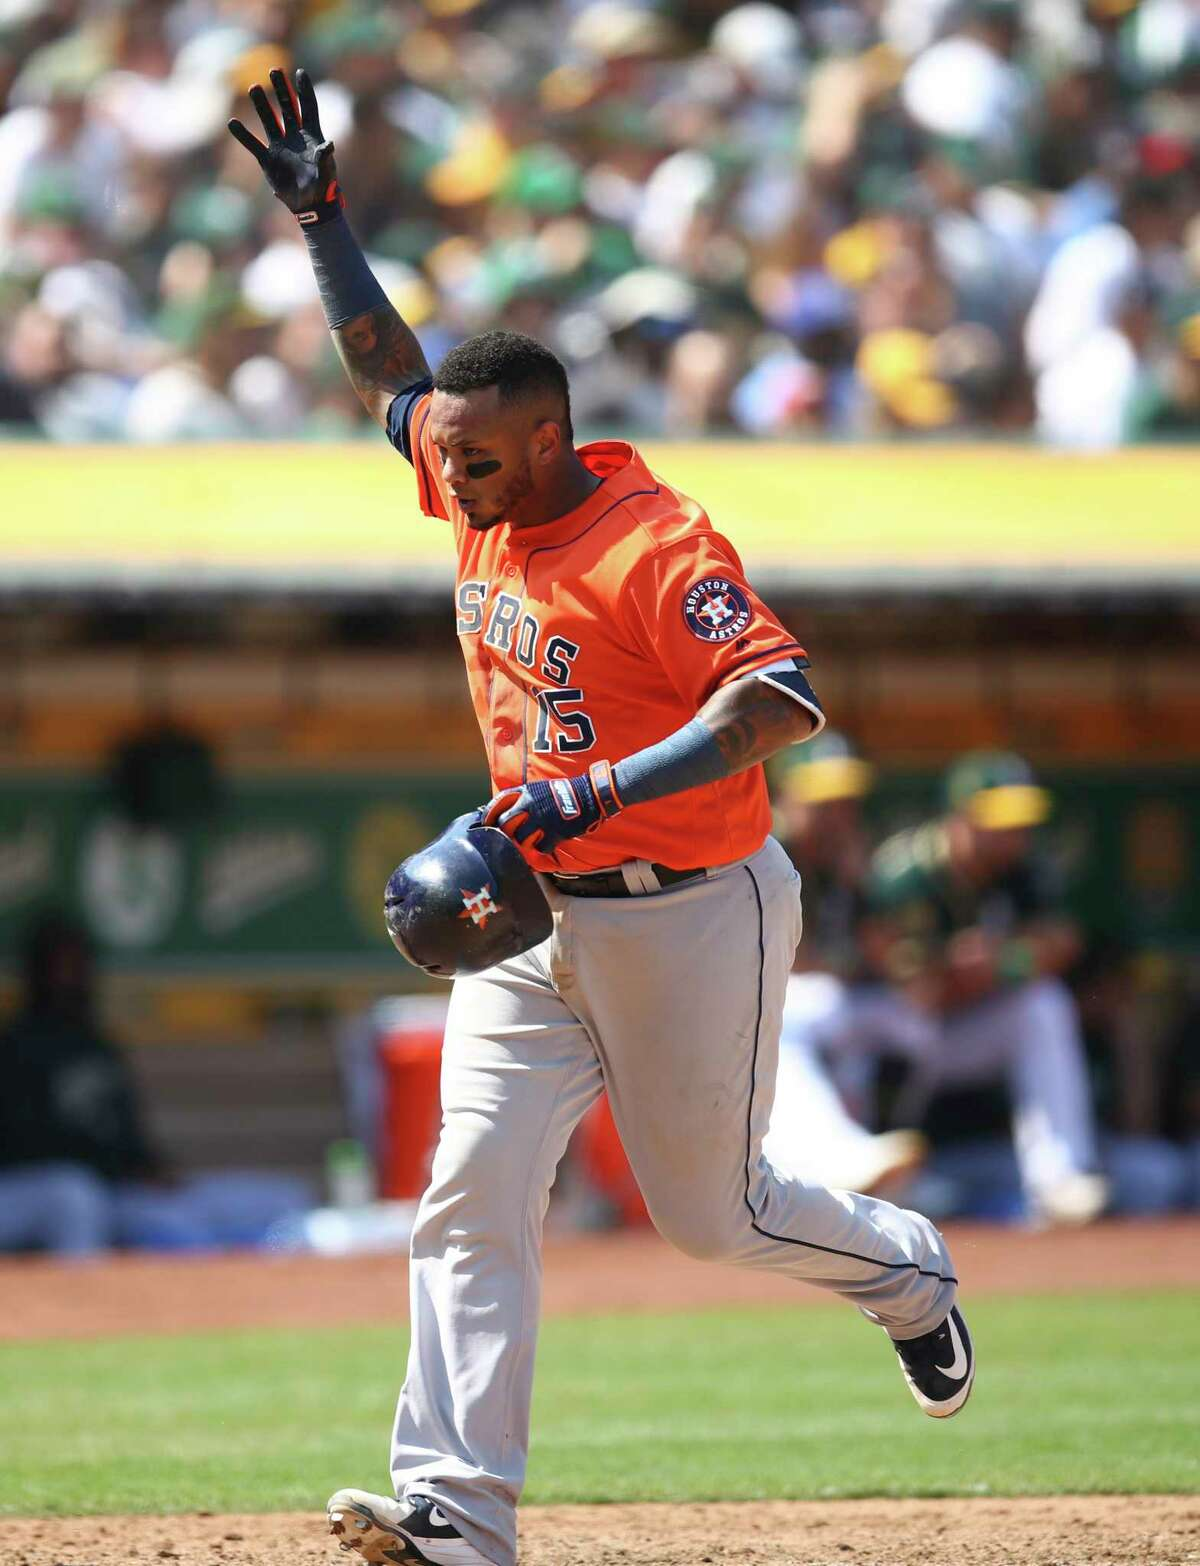 Houston Astros' Martin Maldonado celebrates after hitting a home run off Oakland Athletics' Emilio Pagan in the seventh inning of a baseball game Sunday, Aug. 19, 2018, in Oakland, Calif. (AP Photo/Ben Margot)